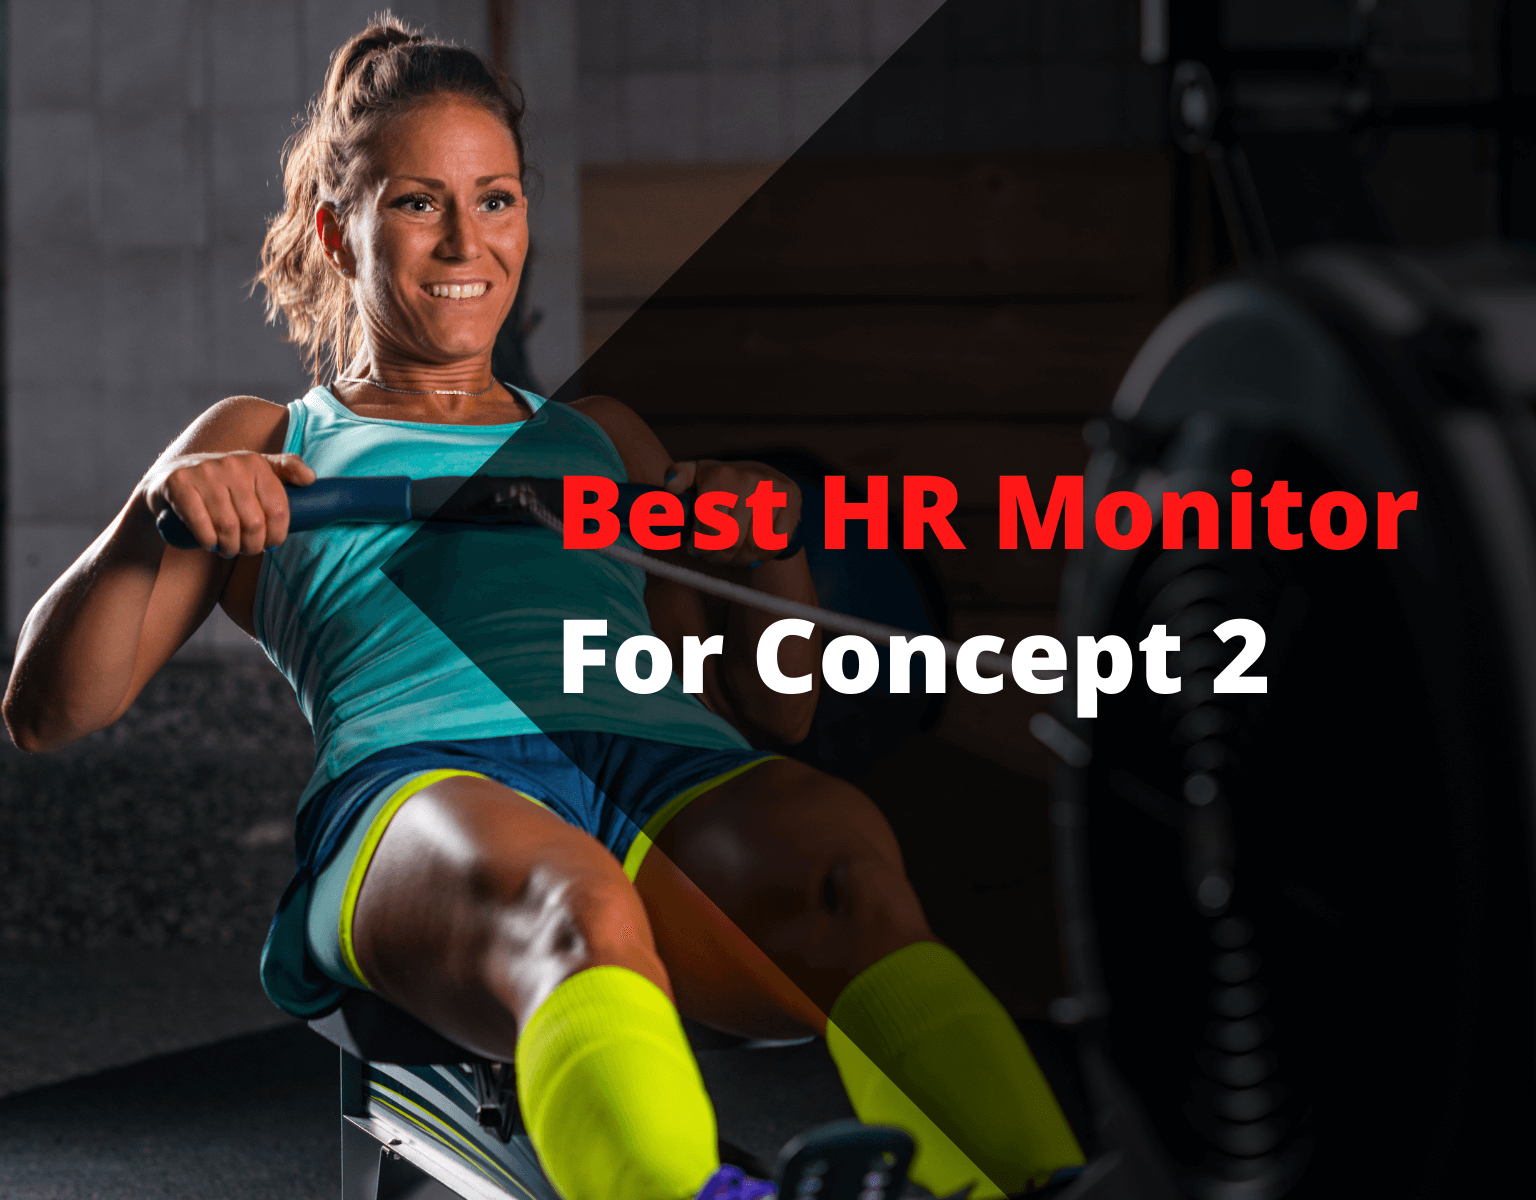 Best Heart rate monitor for concept 2 rowing